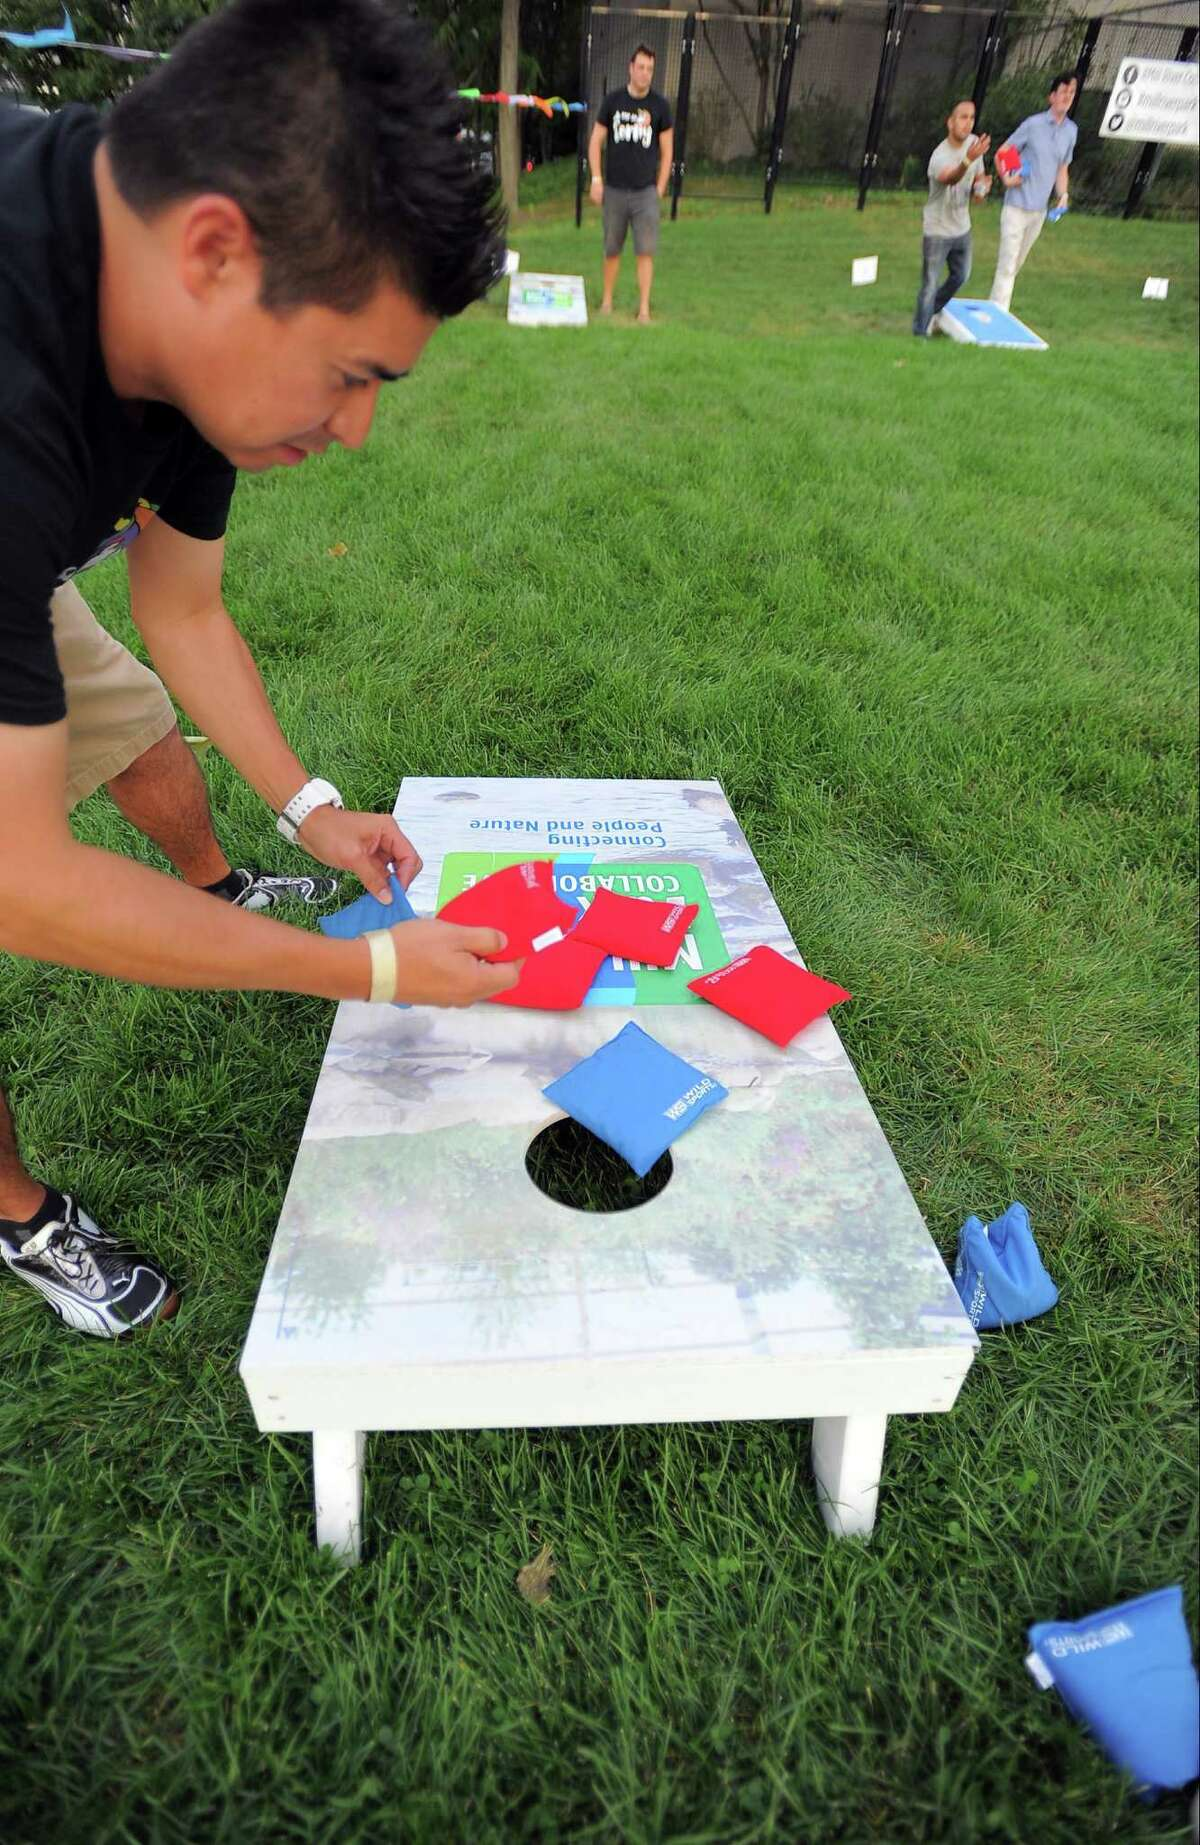 Dan Leyden of team Oh Me So Corny figures out the score during the weekly Tuesday night competition of the Corn Hole League at Mill River Park in Stamford on Sept 6, 2016. About 20 teams compete in the 7 week event sponsored by sponsored by Stamford's Half Full Brewery and Mill River Park Collaborative. in Stamford on Tuesday, Sept 6, 2016.